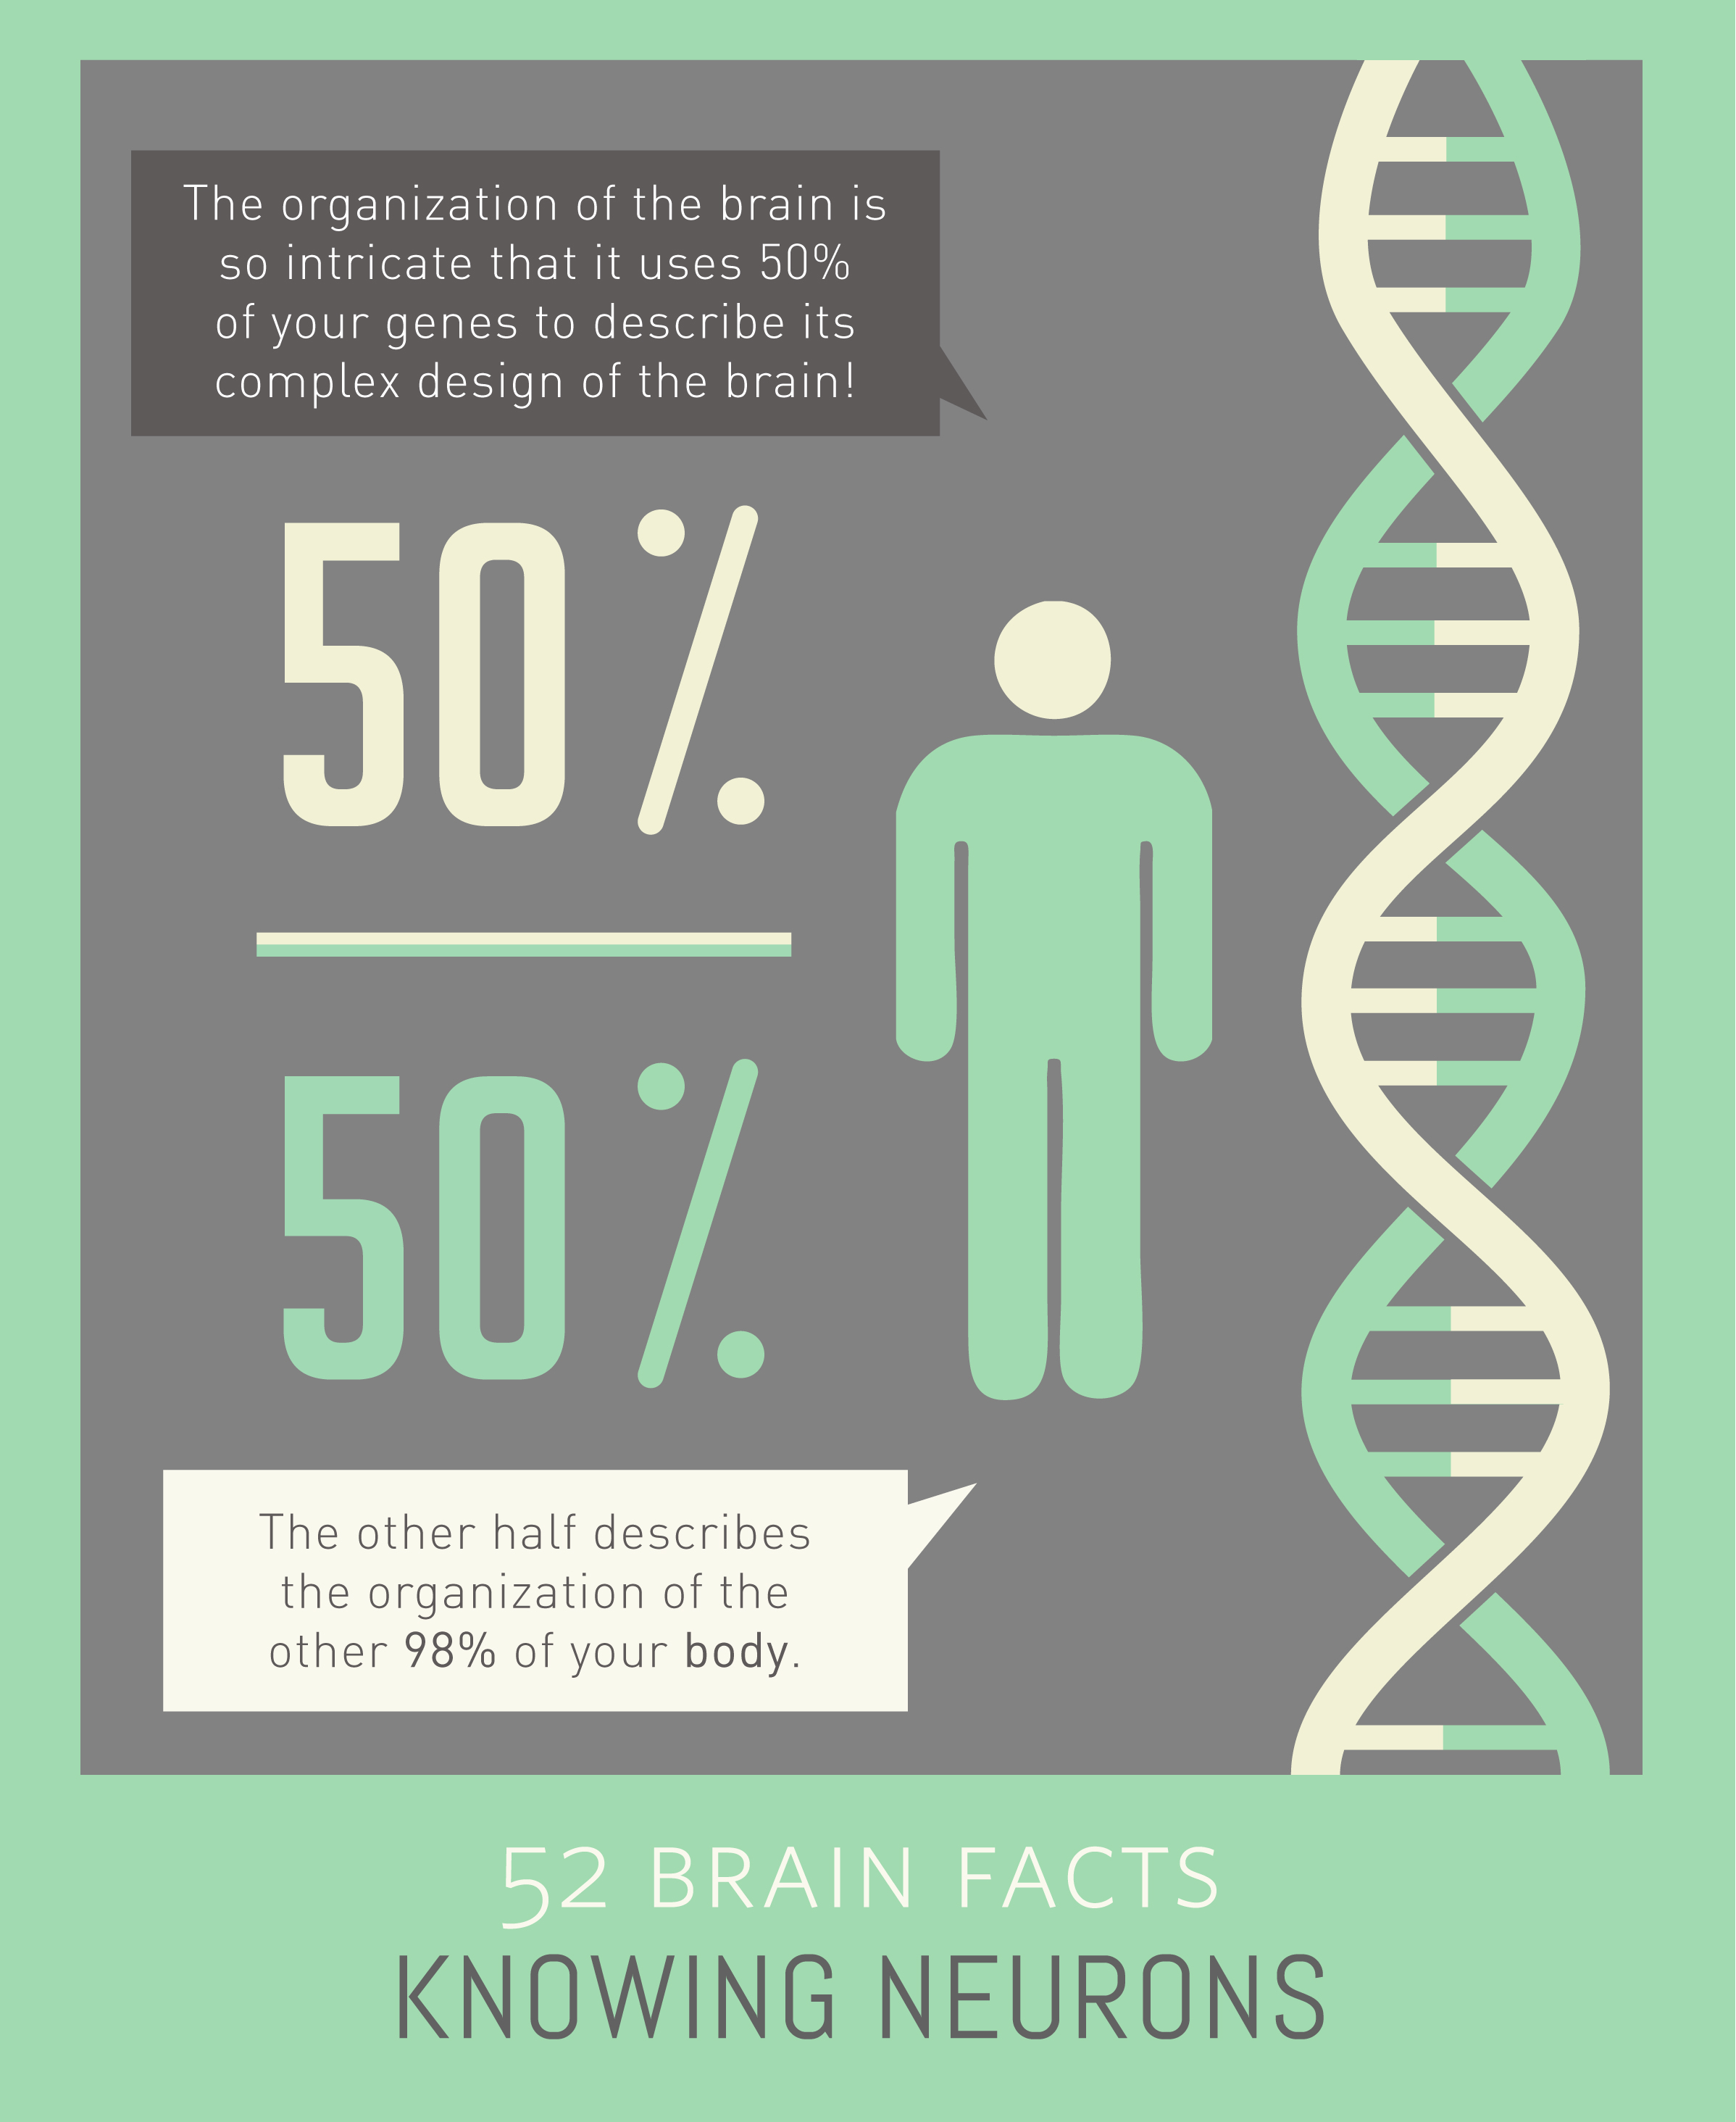 Myth or Fact? 10% of your genes describe the organization of the brain.